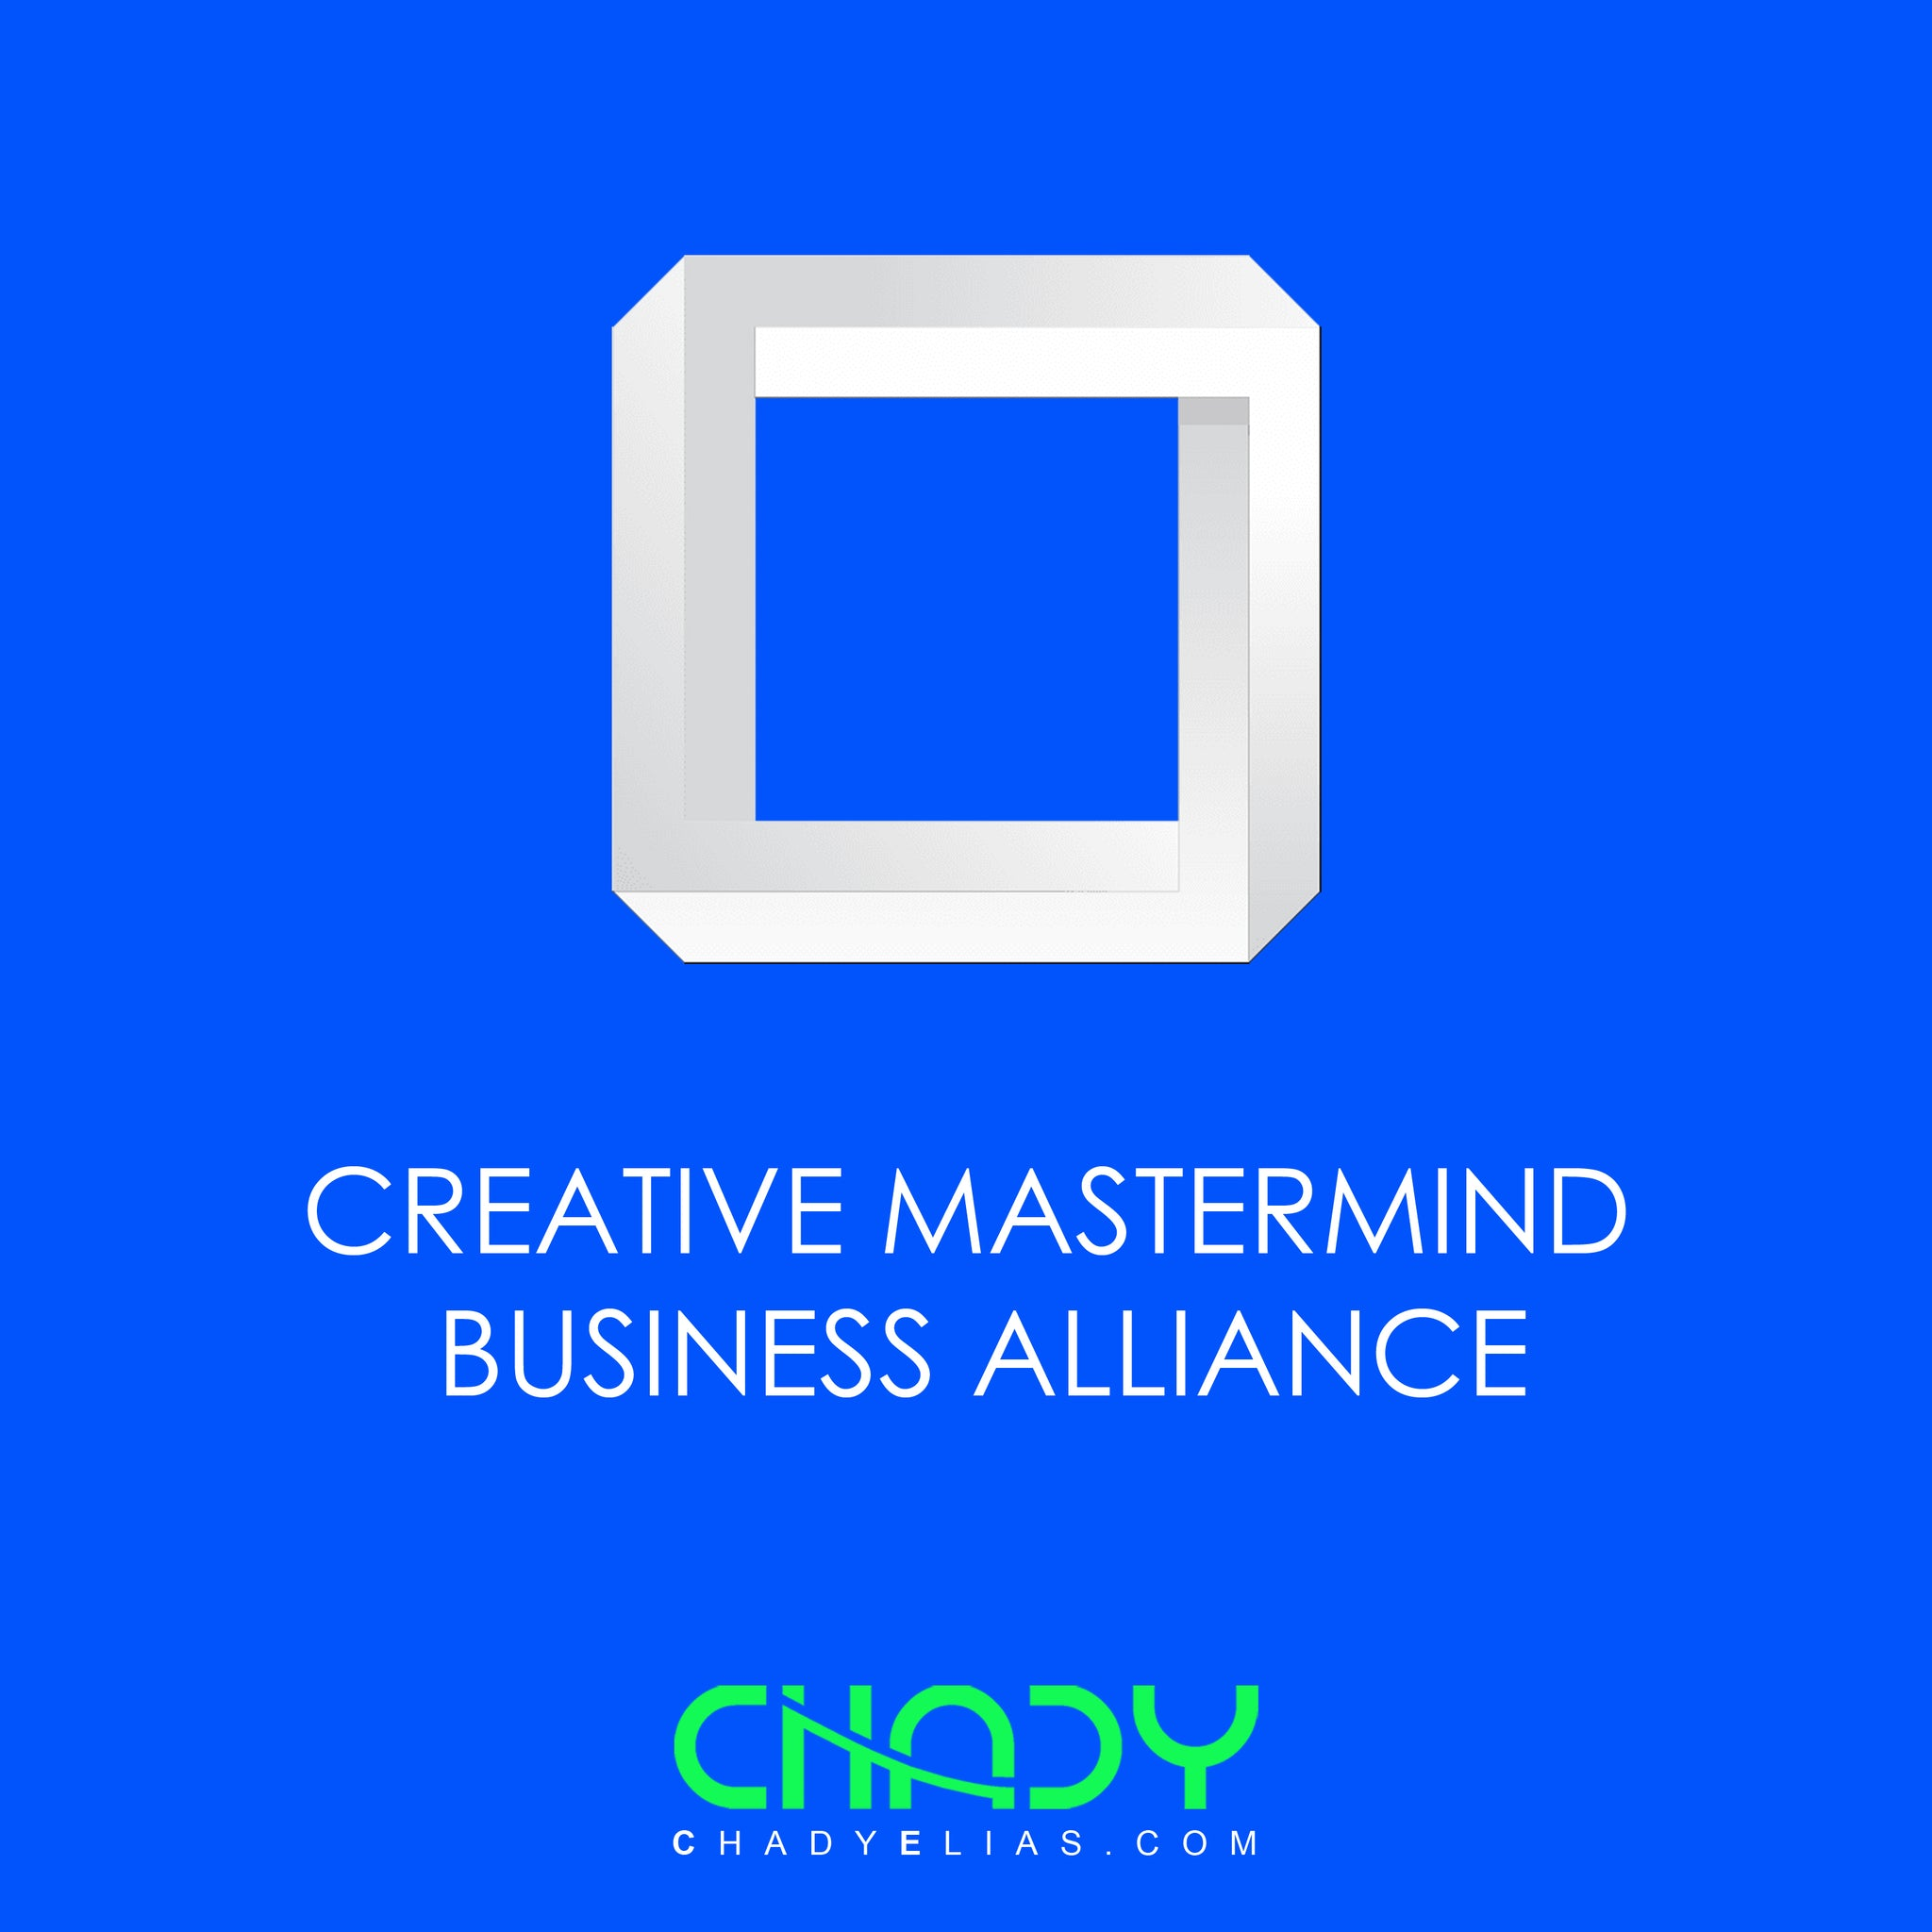 Creative Mastermind Business Alliance - CMBA - Chady Elias